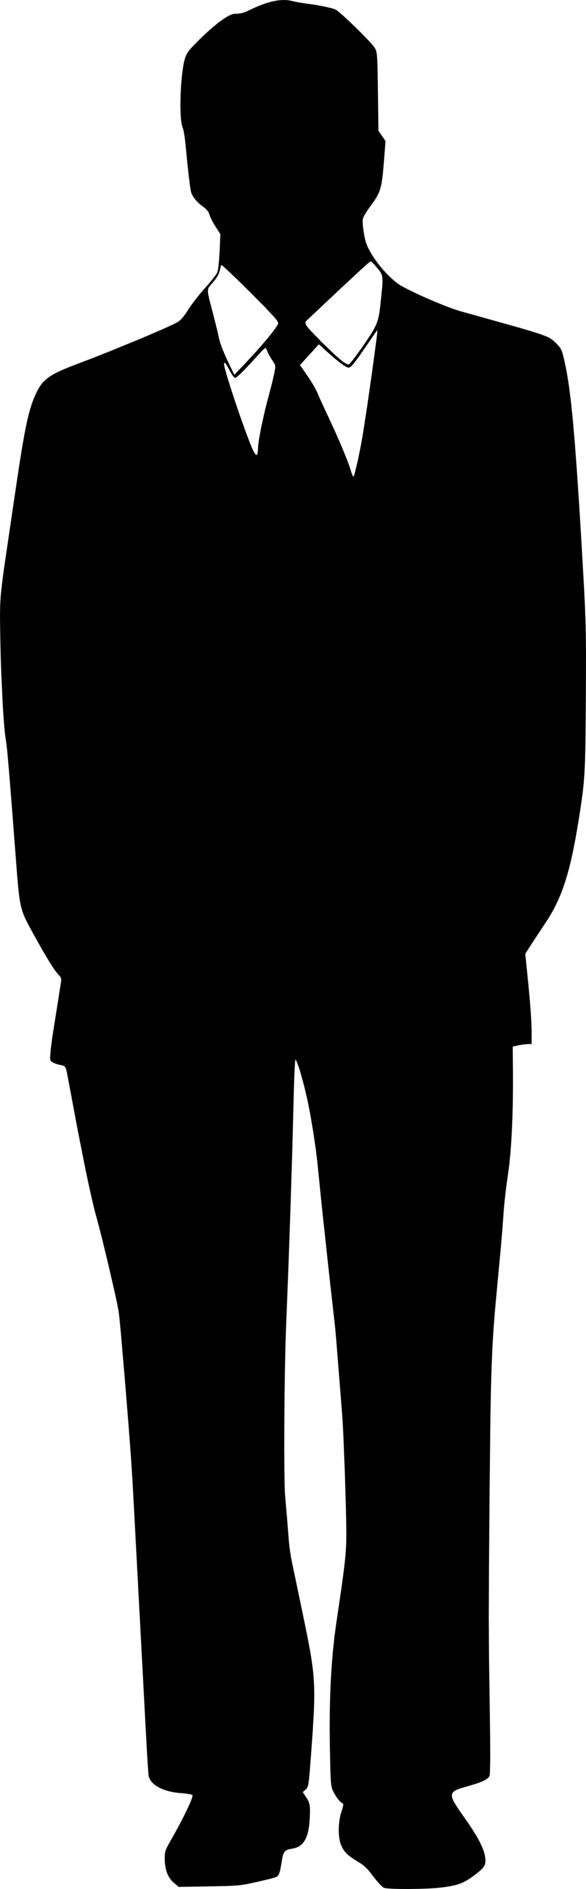 Tuxedo clipart guy. Man in silhouette at